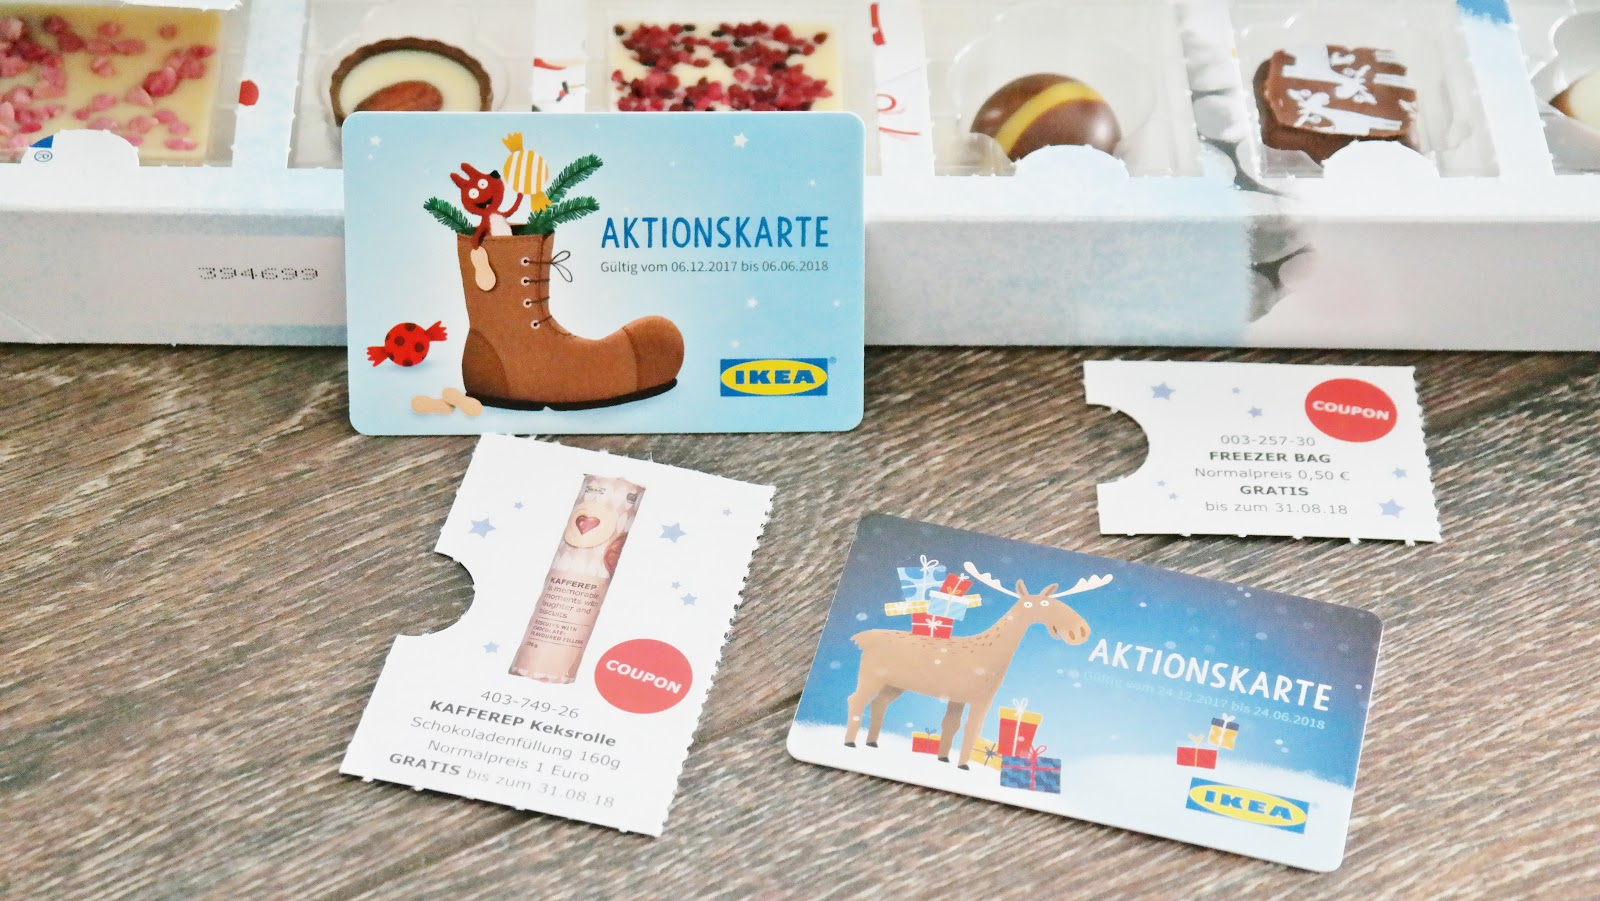 Ikea Adventskalender Annashines Beautyblog Ikea Adventskalender 2017